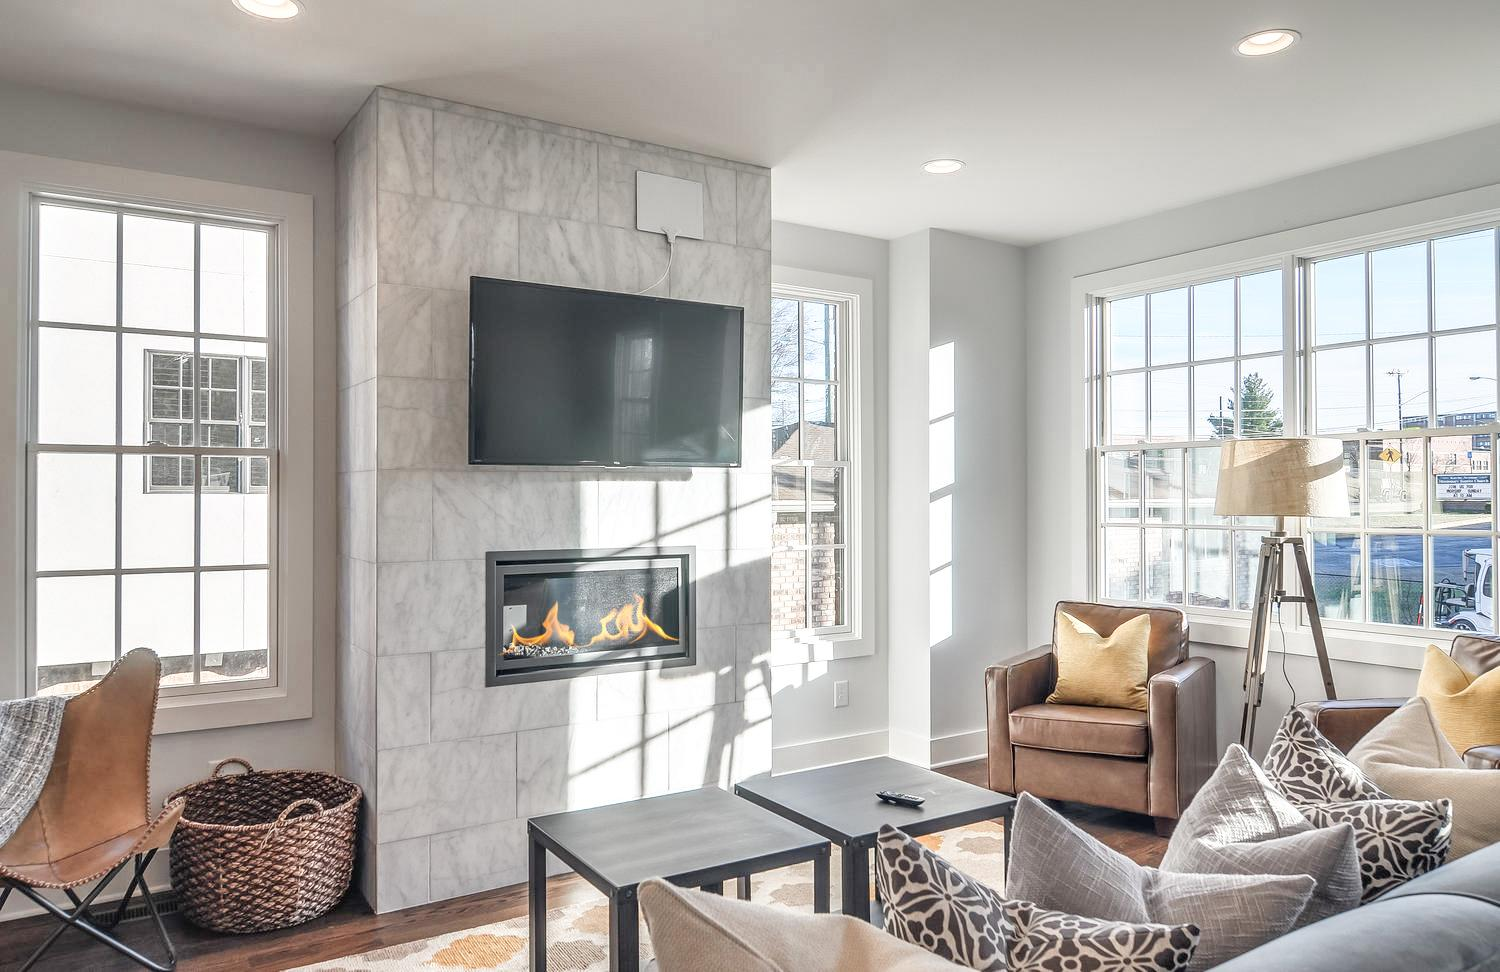 The lovingly decorated living room is a cool hangout in this well-appointed townhome.